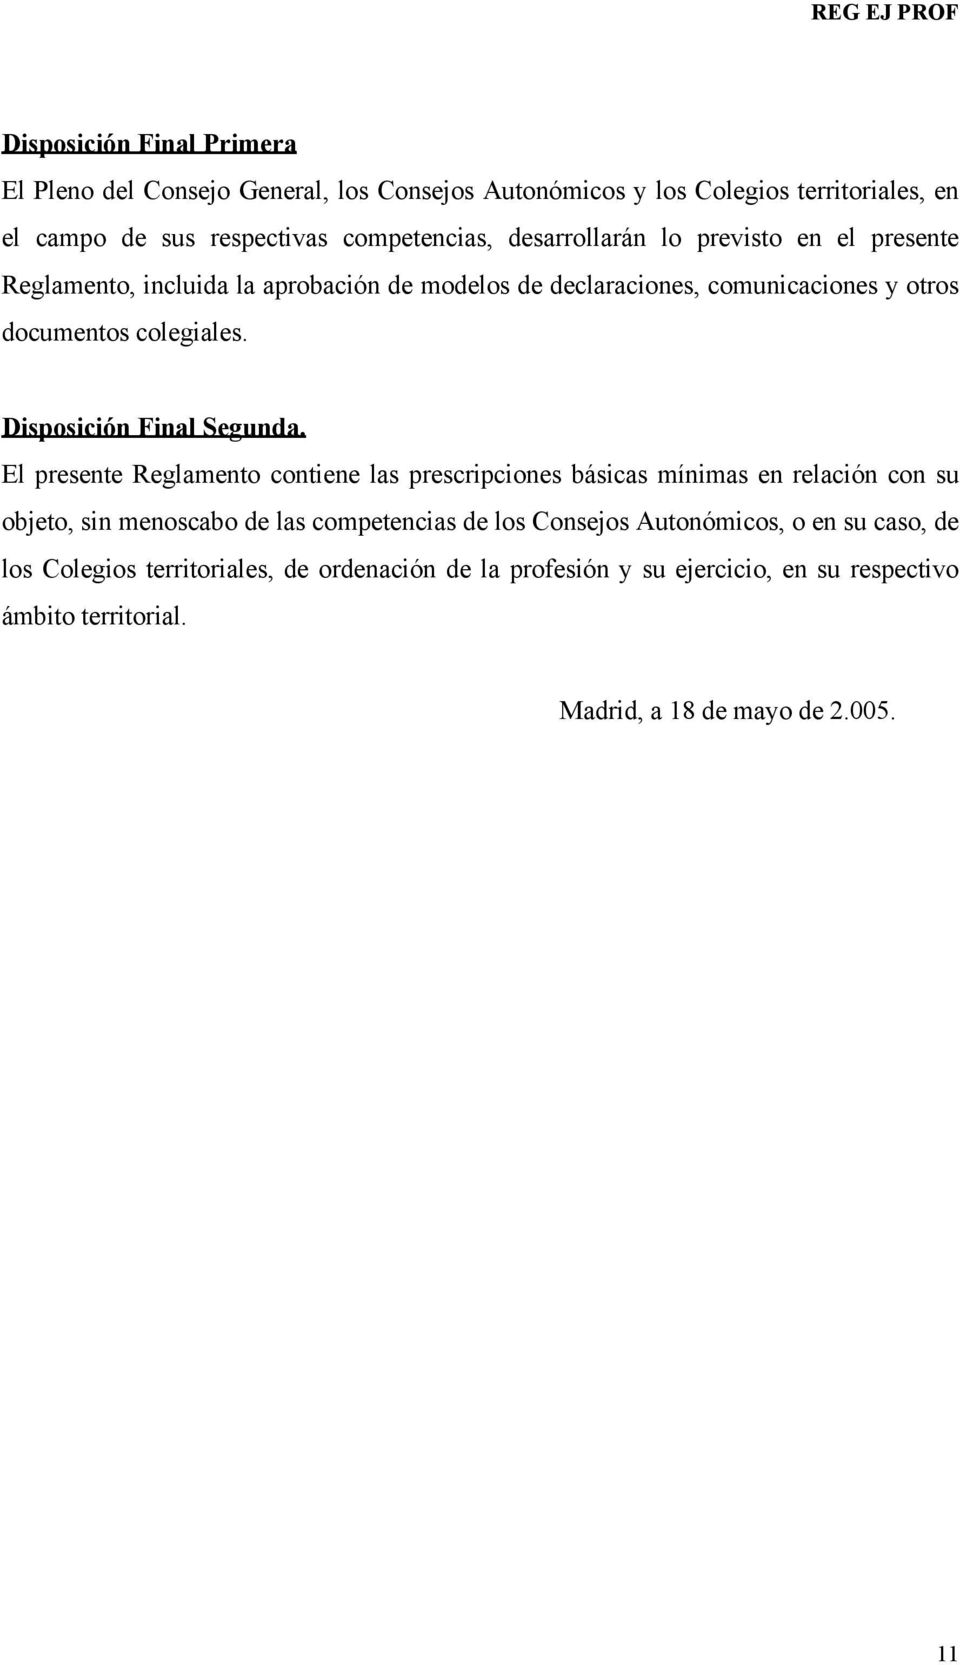 Disposición Final Segunda.